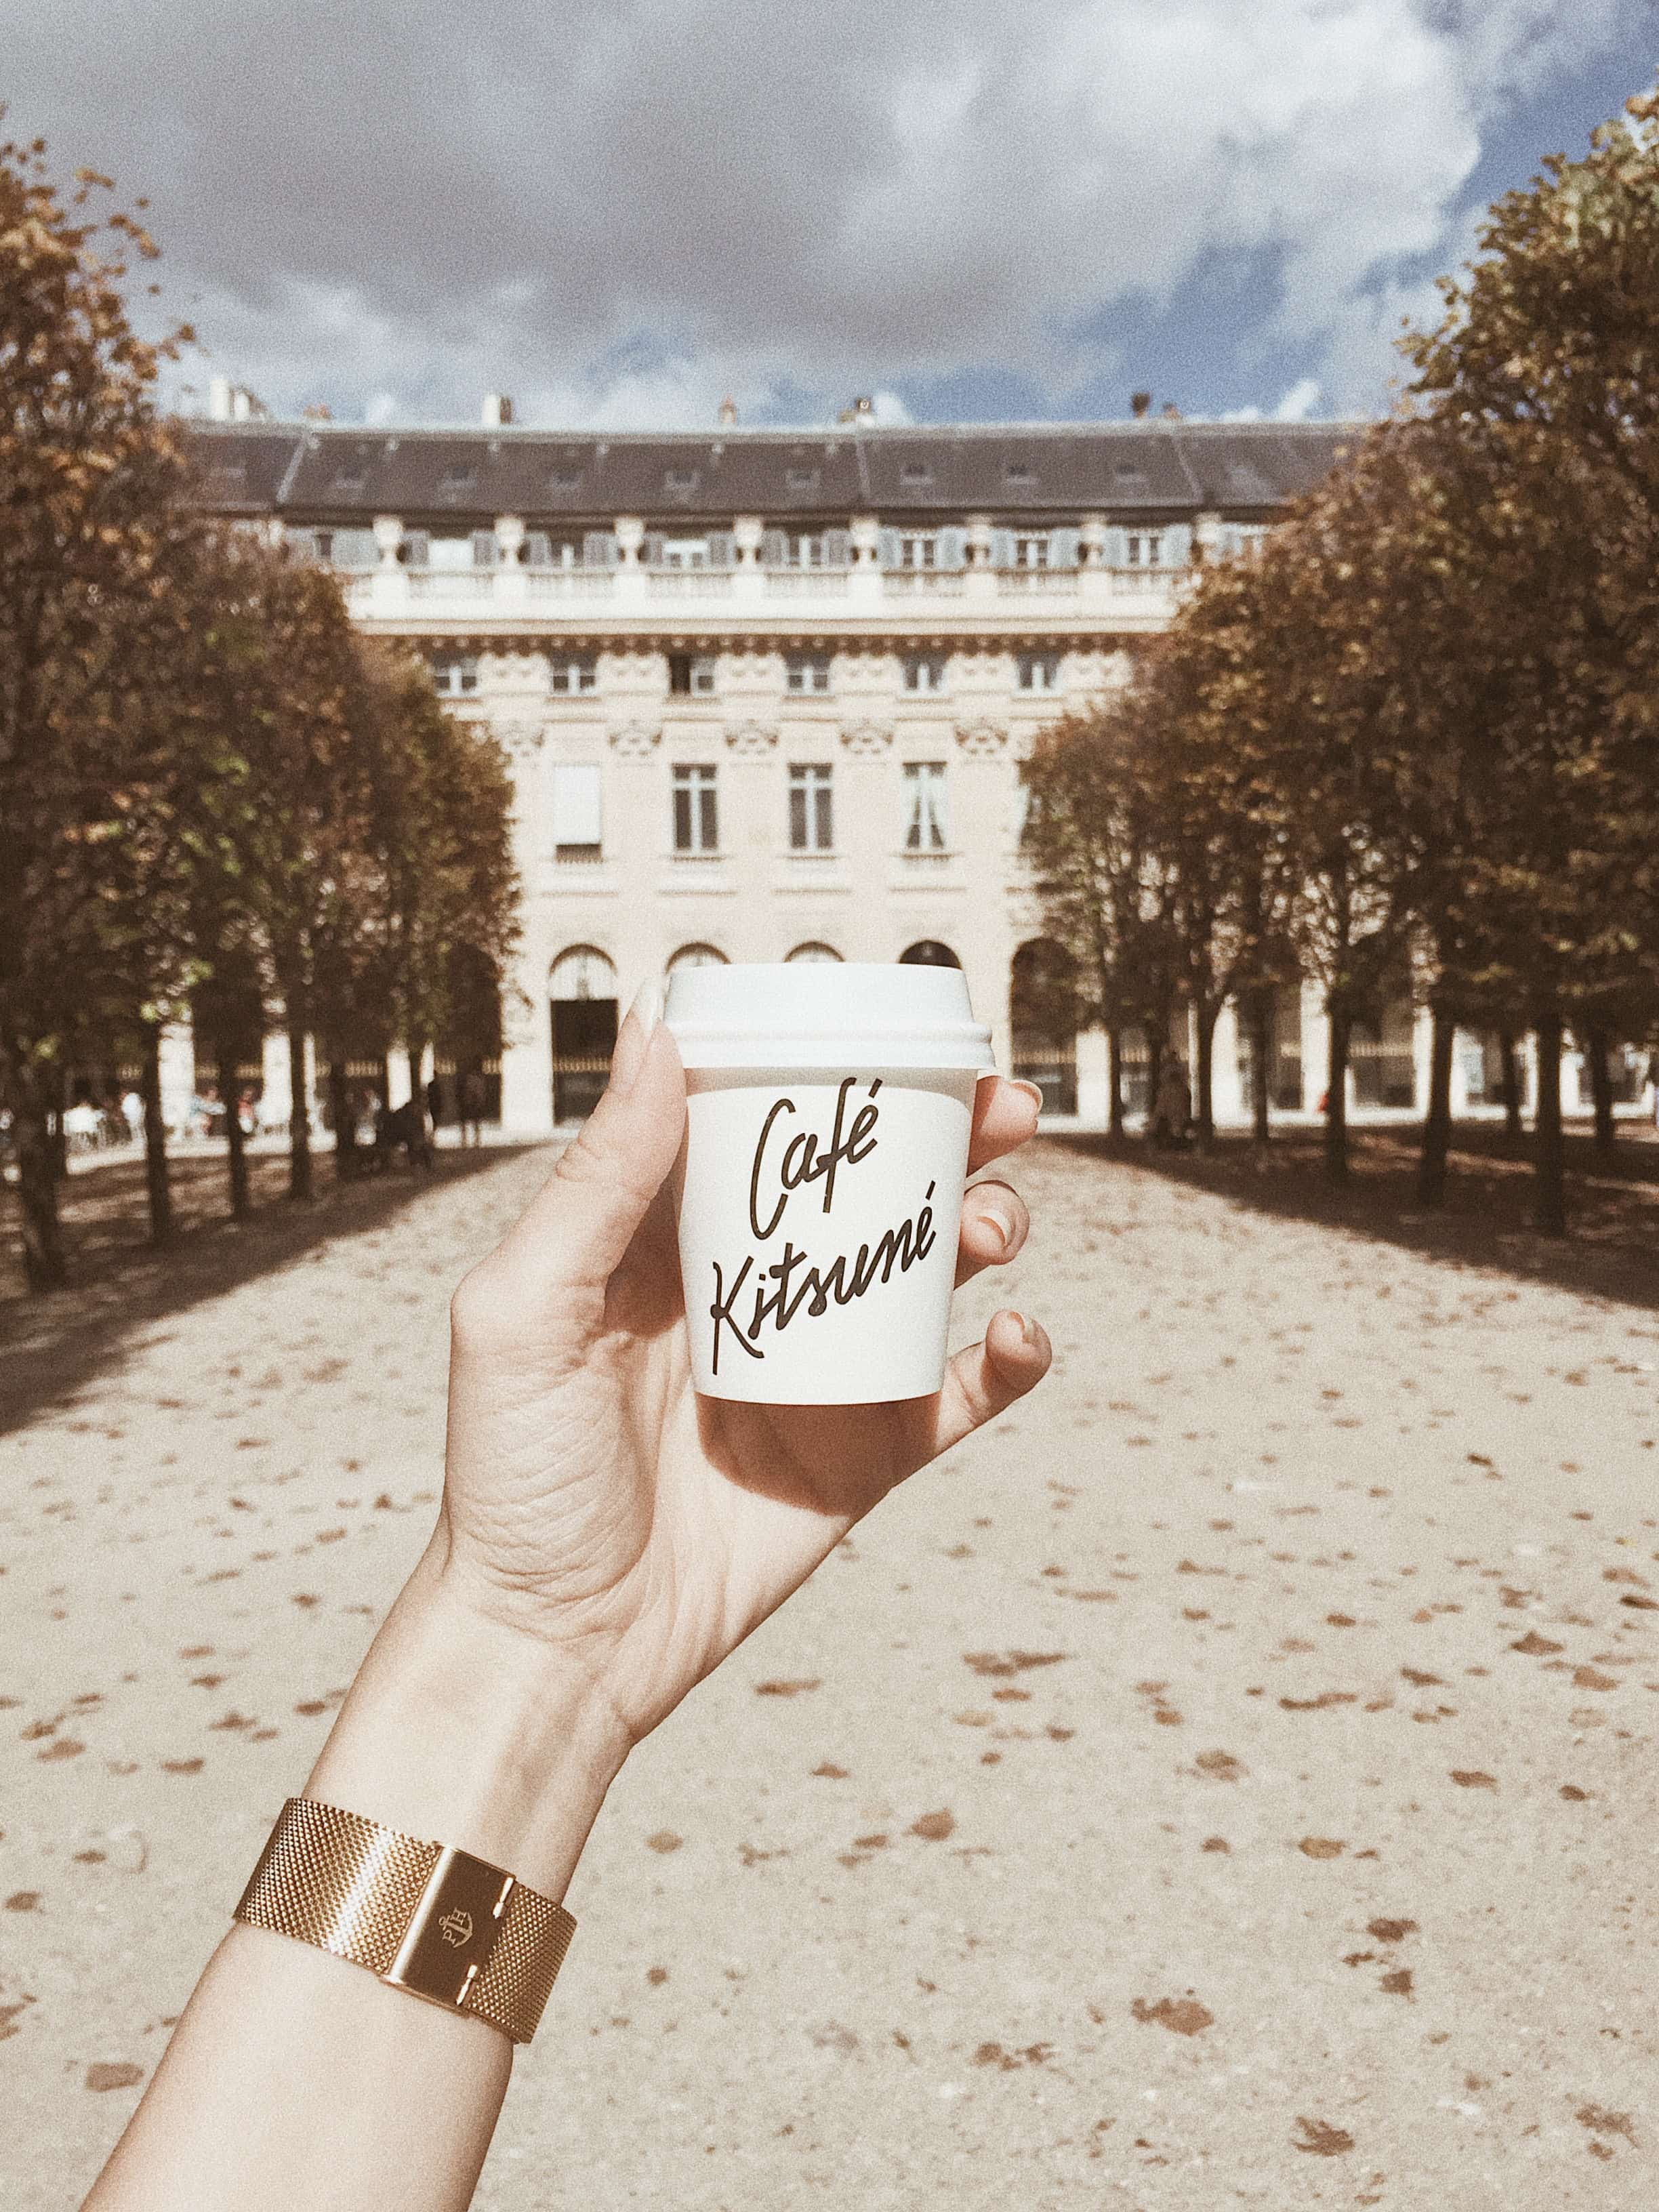 cafe kitsune cup in Paris